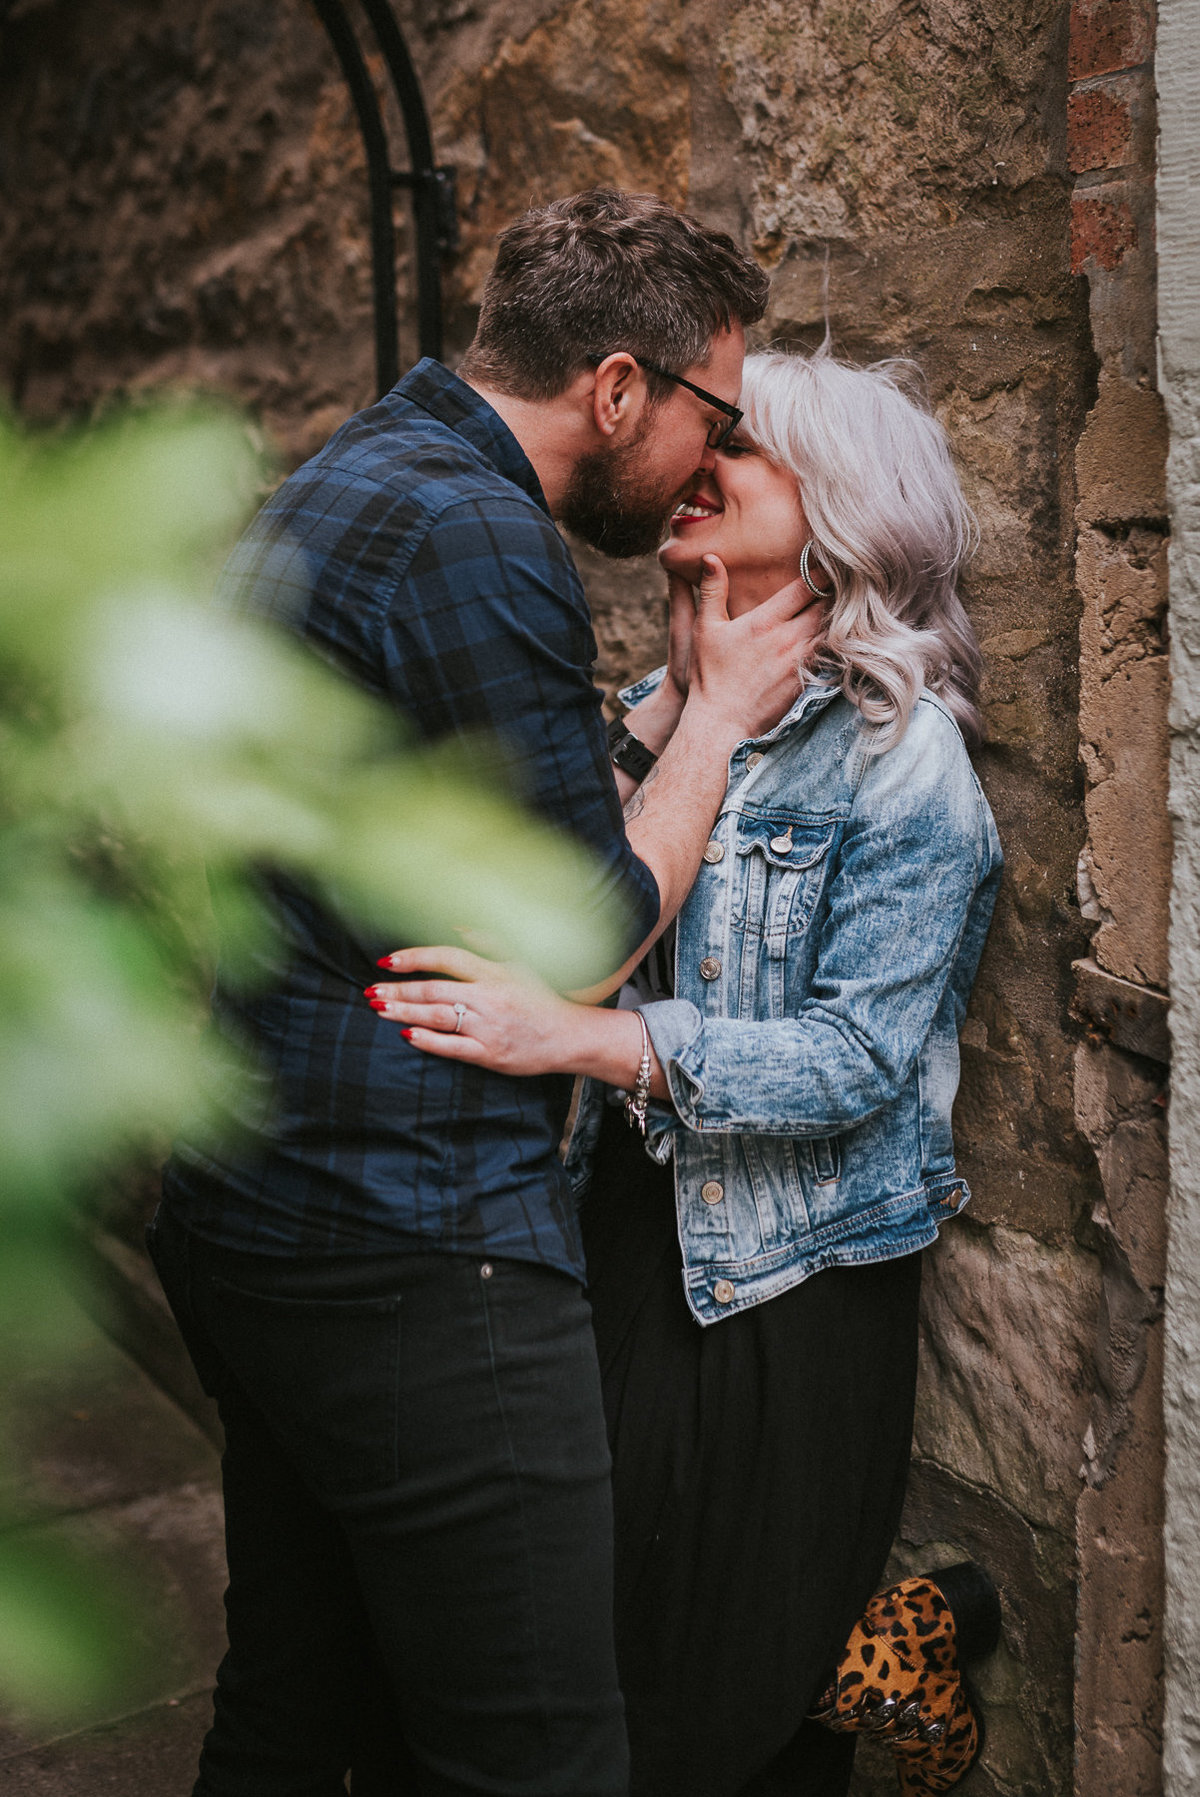 bend-oregon-adventure-elopement-wedding-couple-family-destination-photographer-portrait-photography-meredith-sands-31